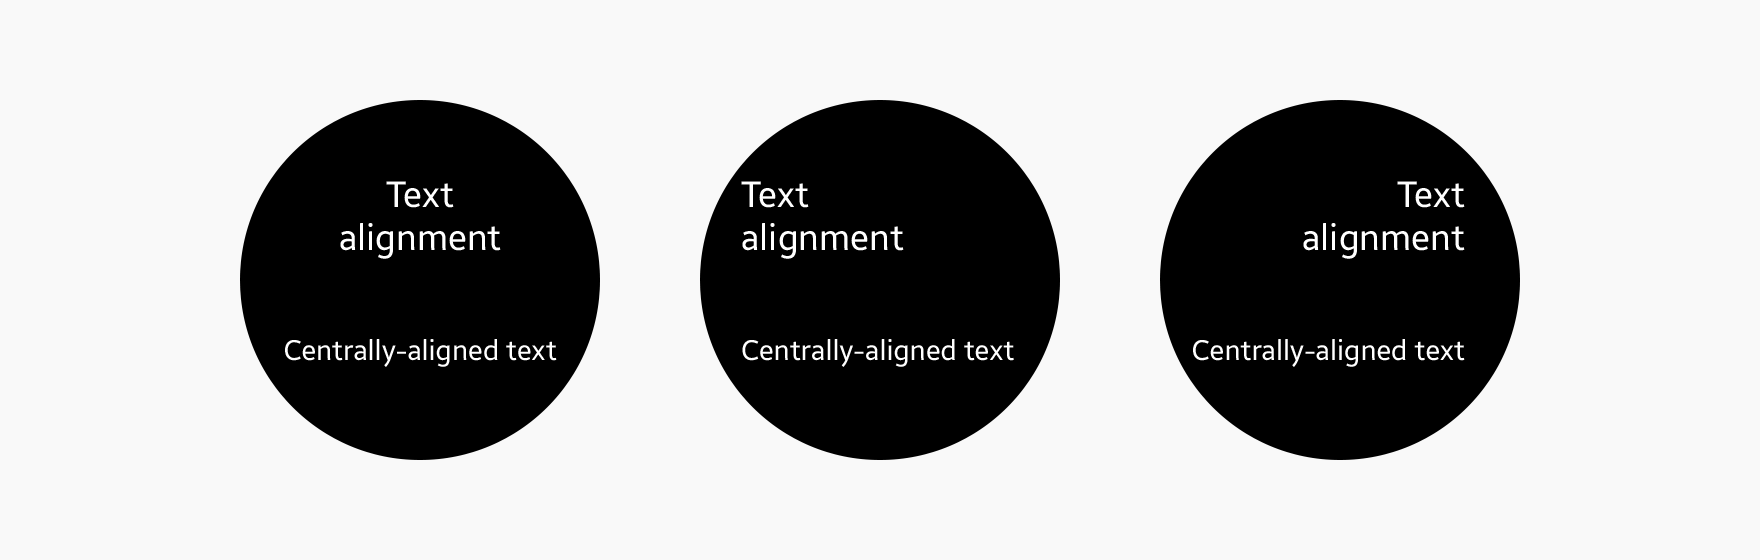 We recommend aligning text in the center when the text is short.